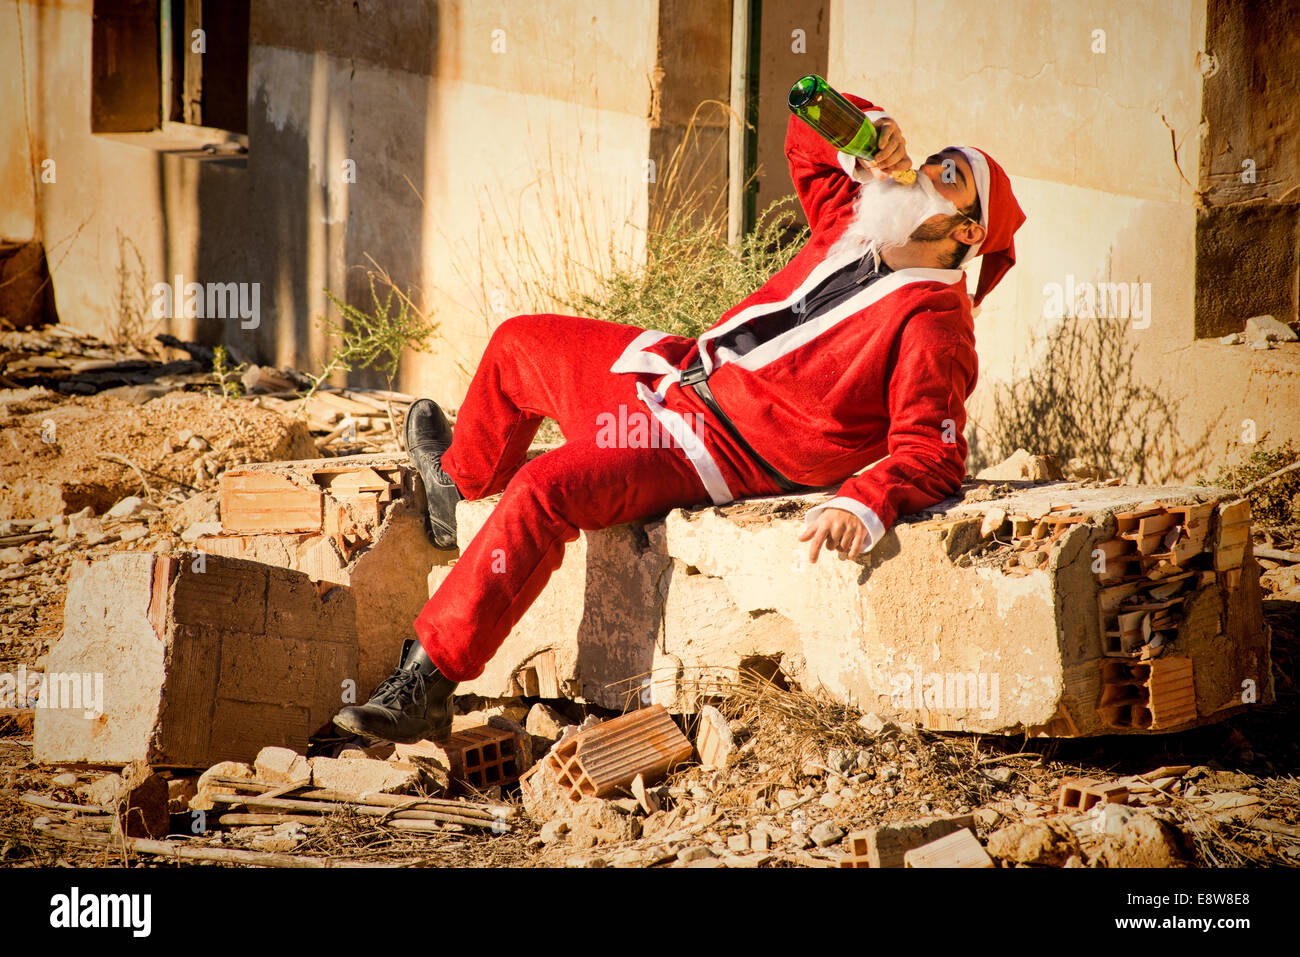 A stressed out Santa indulging in a bottle of champagne - Stock Image